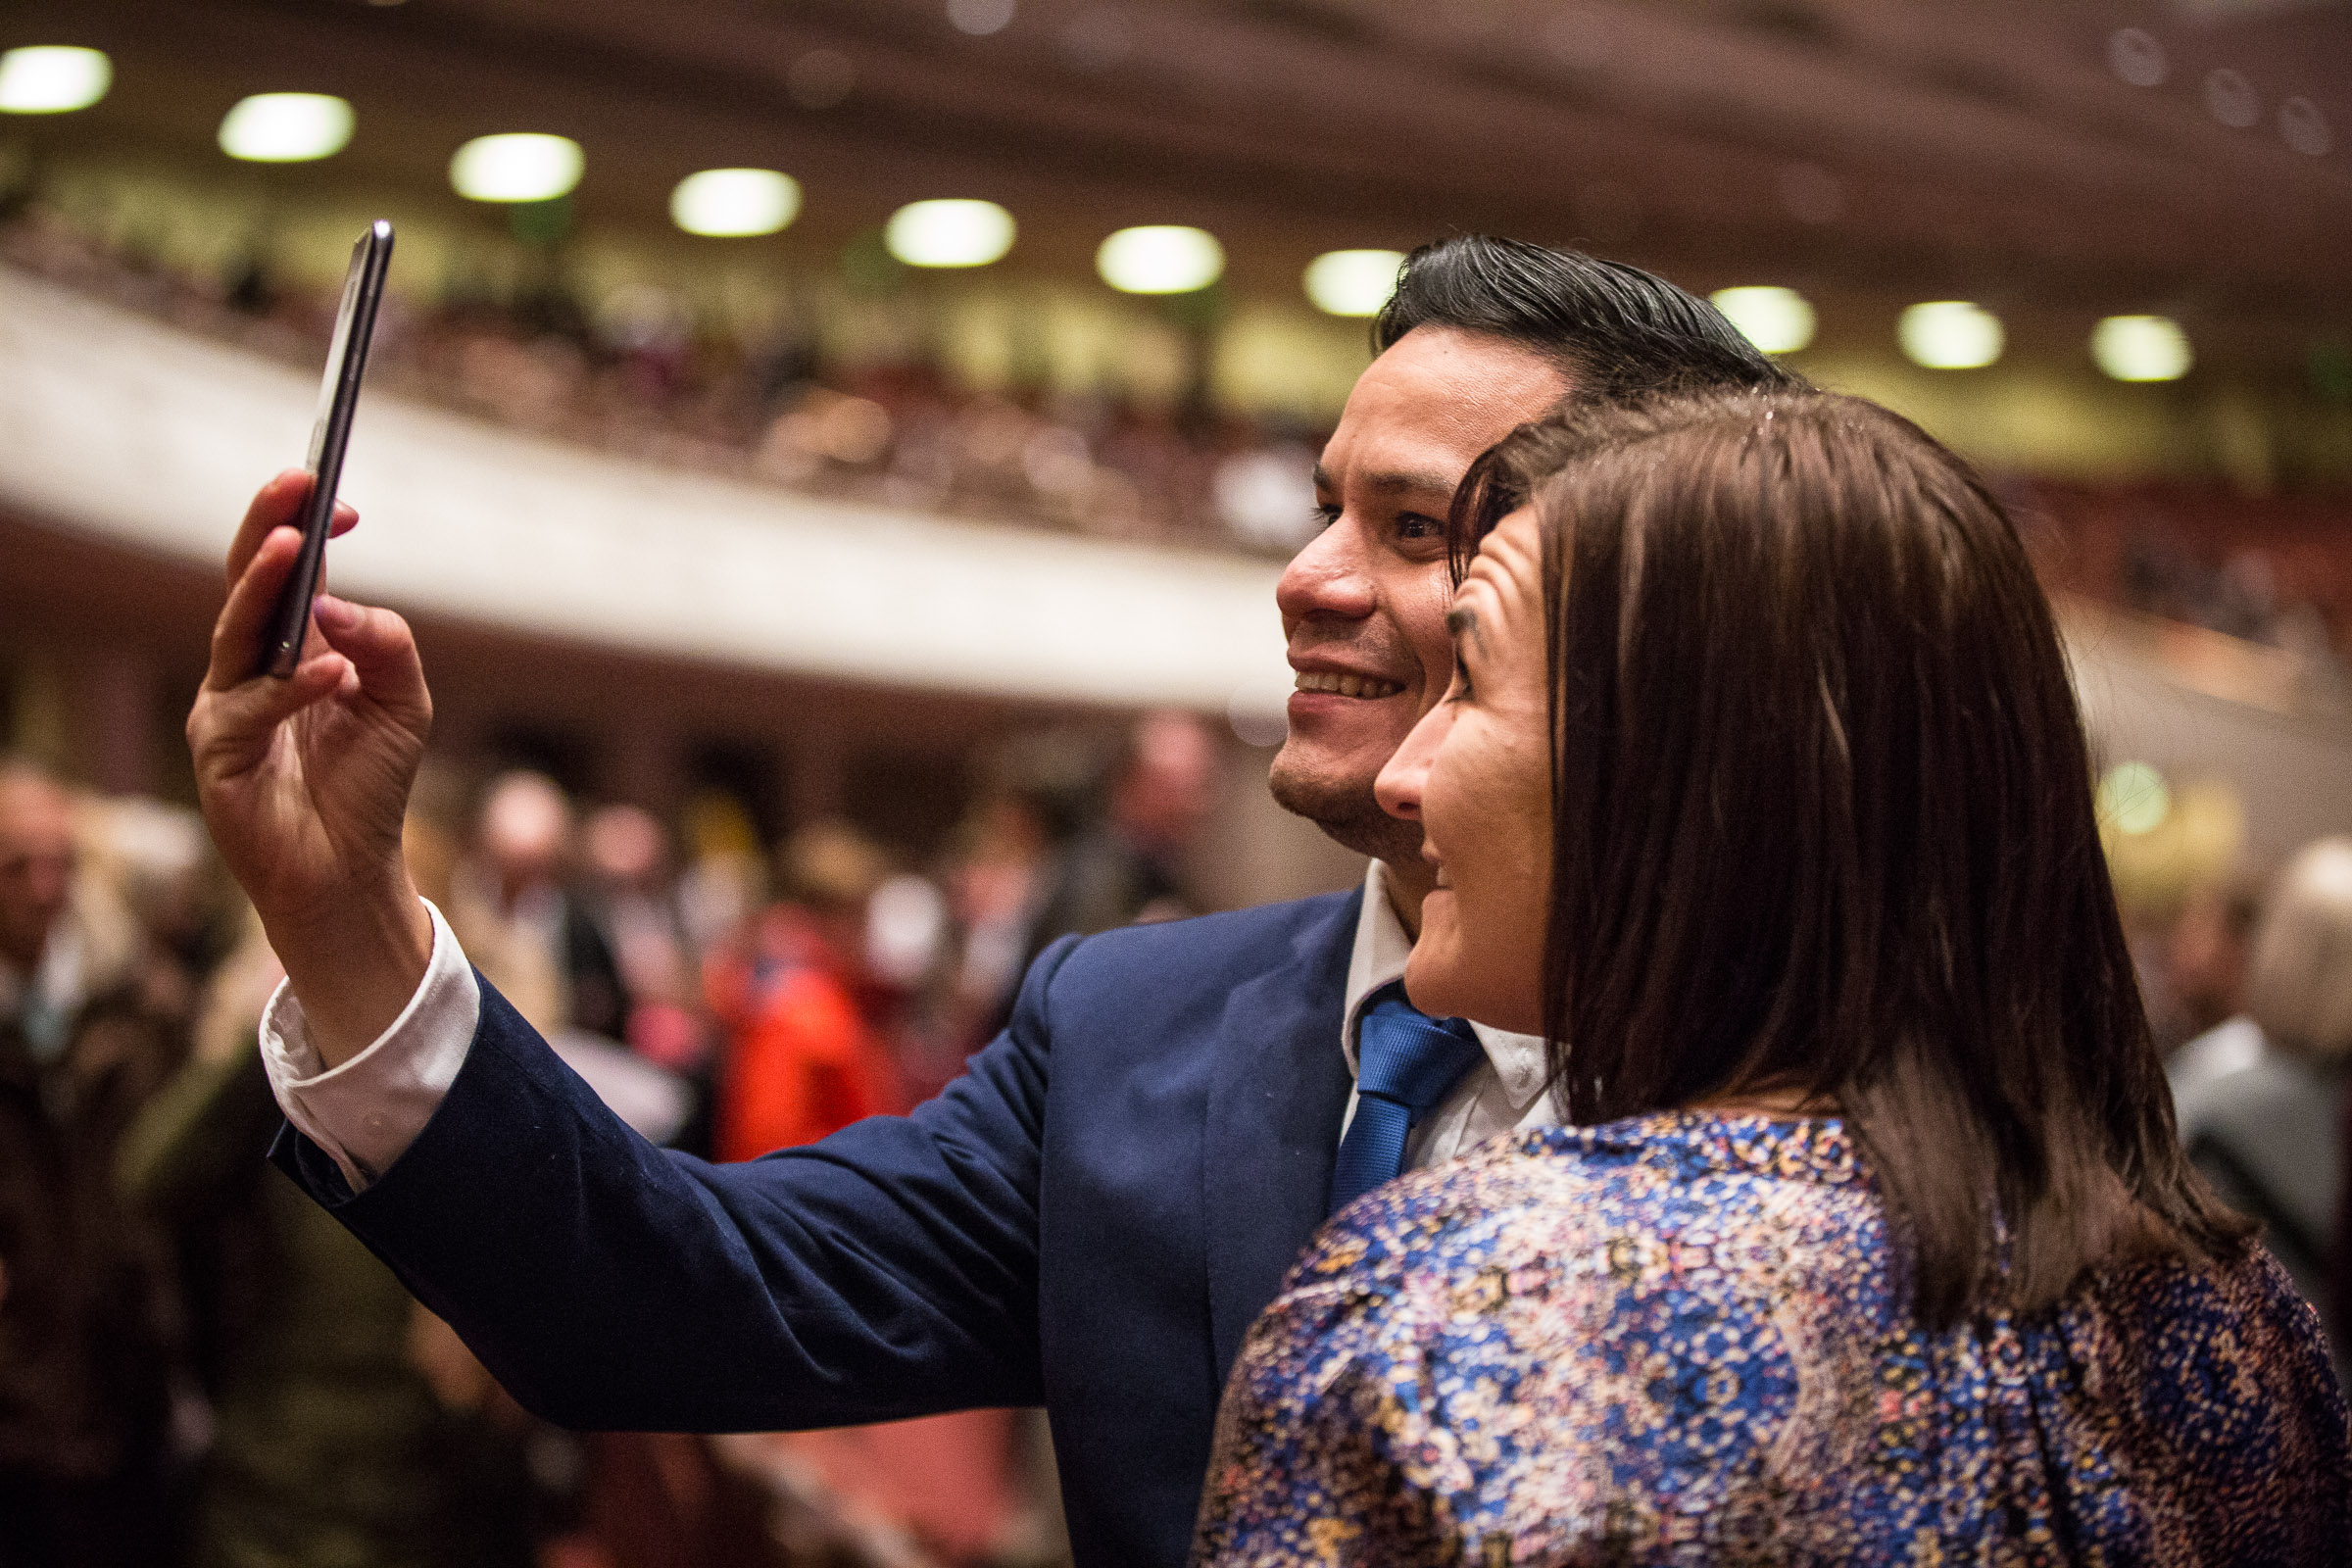 A couple takes a selfie before the First Presidency's Christmas Devotional in the Conference Center in Salt Lake City on Sunday, Dec. 2, 2018.